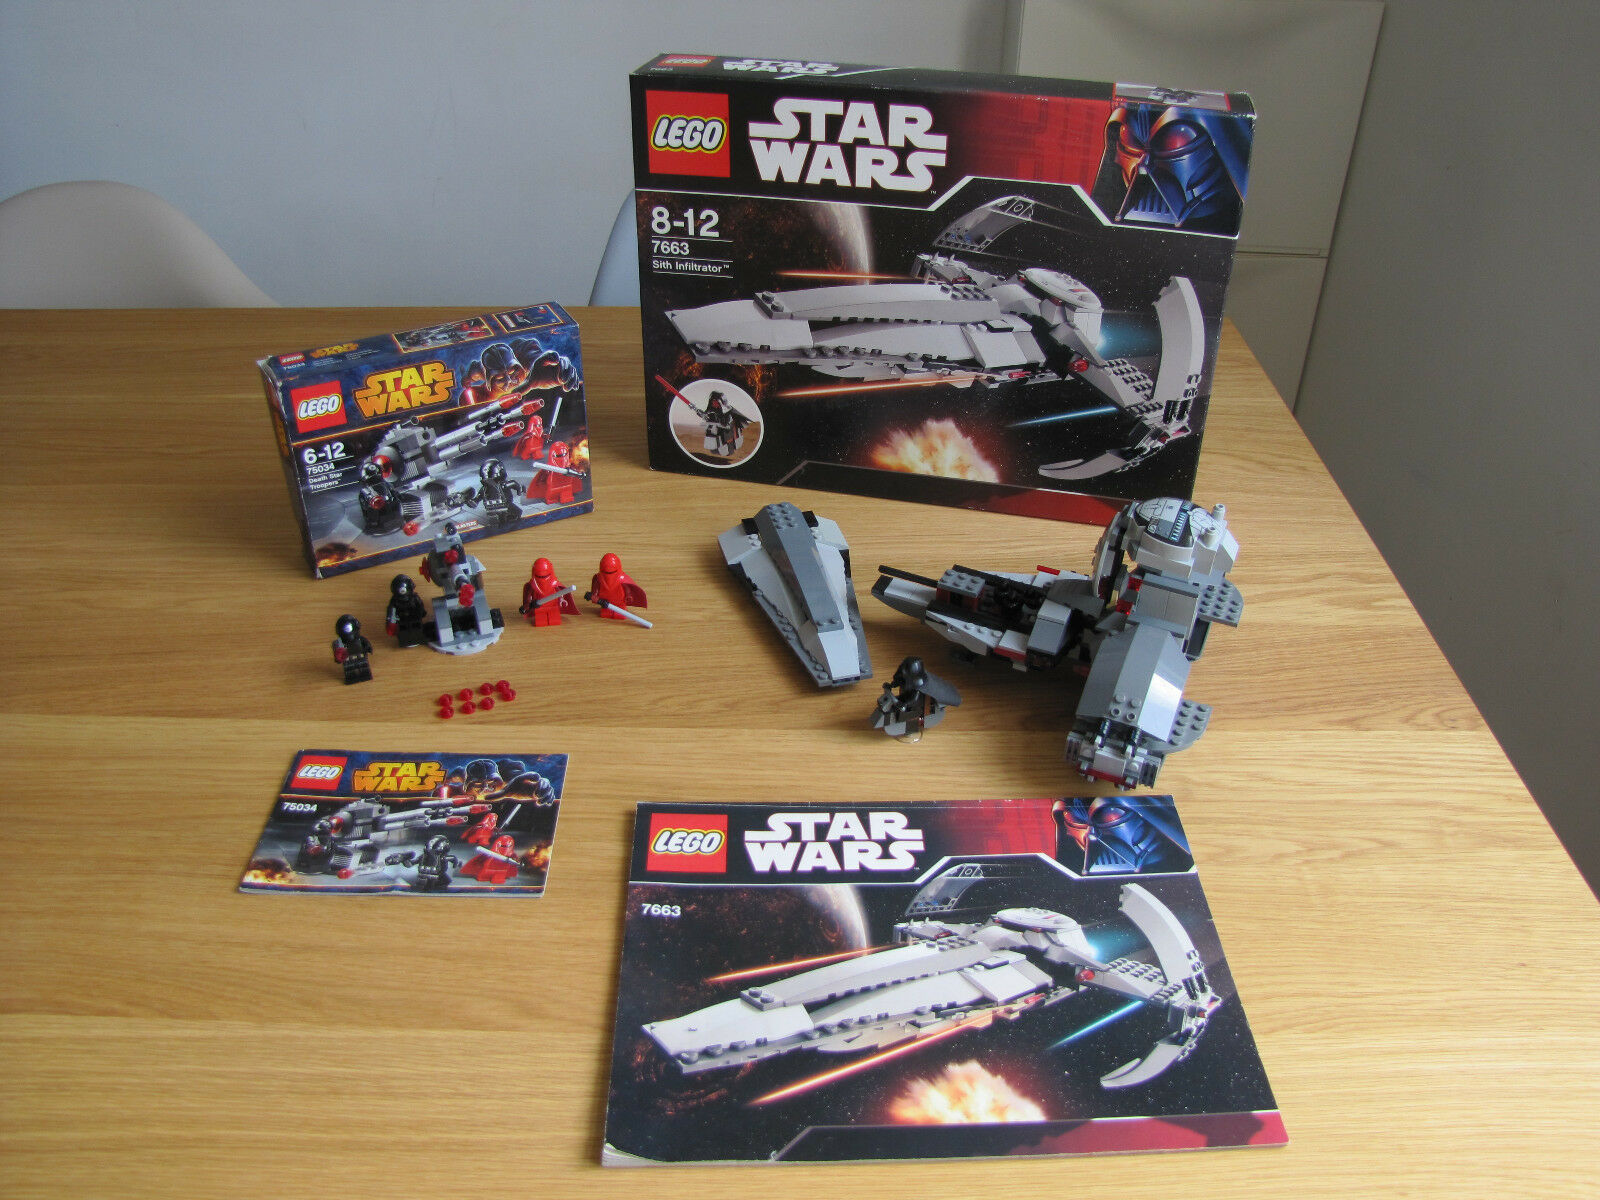 Lego Star Wars 7663 Sith Infiltrator, 75034 Death Star Troopers, komplett OVP